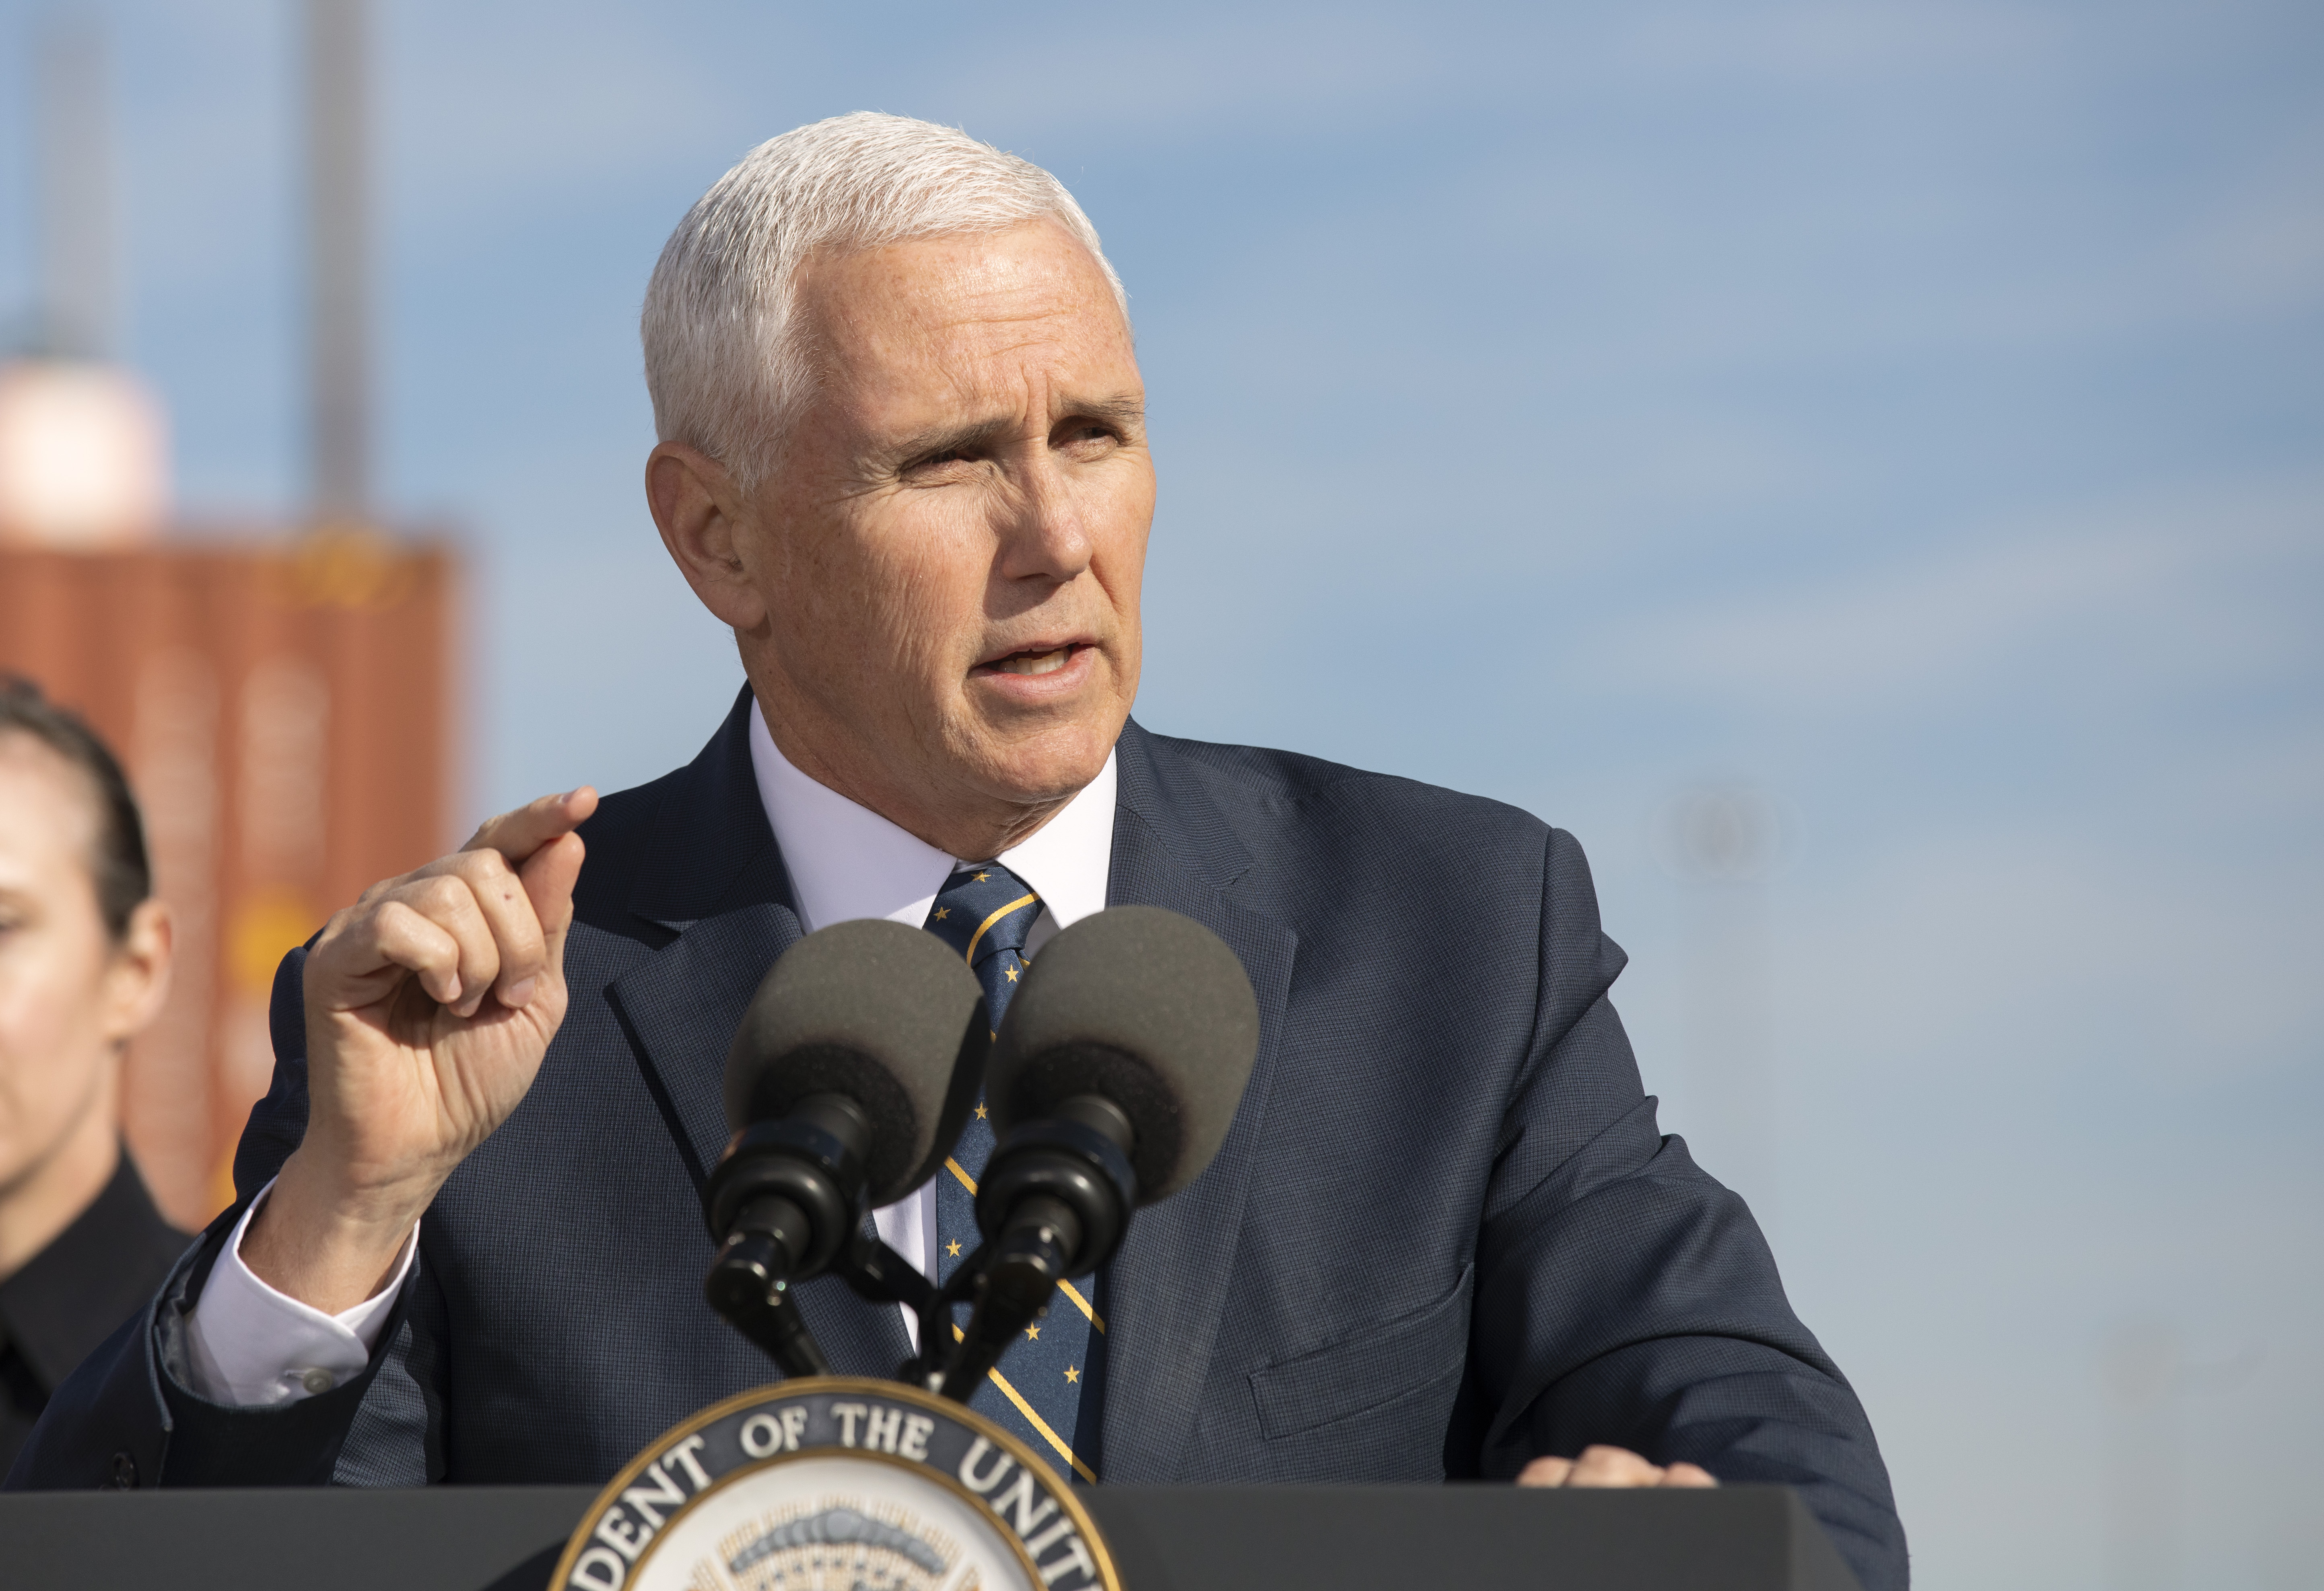 Law firms call for Vice President Pence to invoke 25th Amendment, remove President Trump